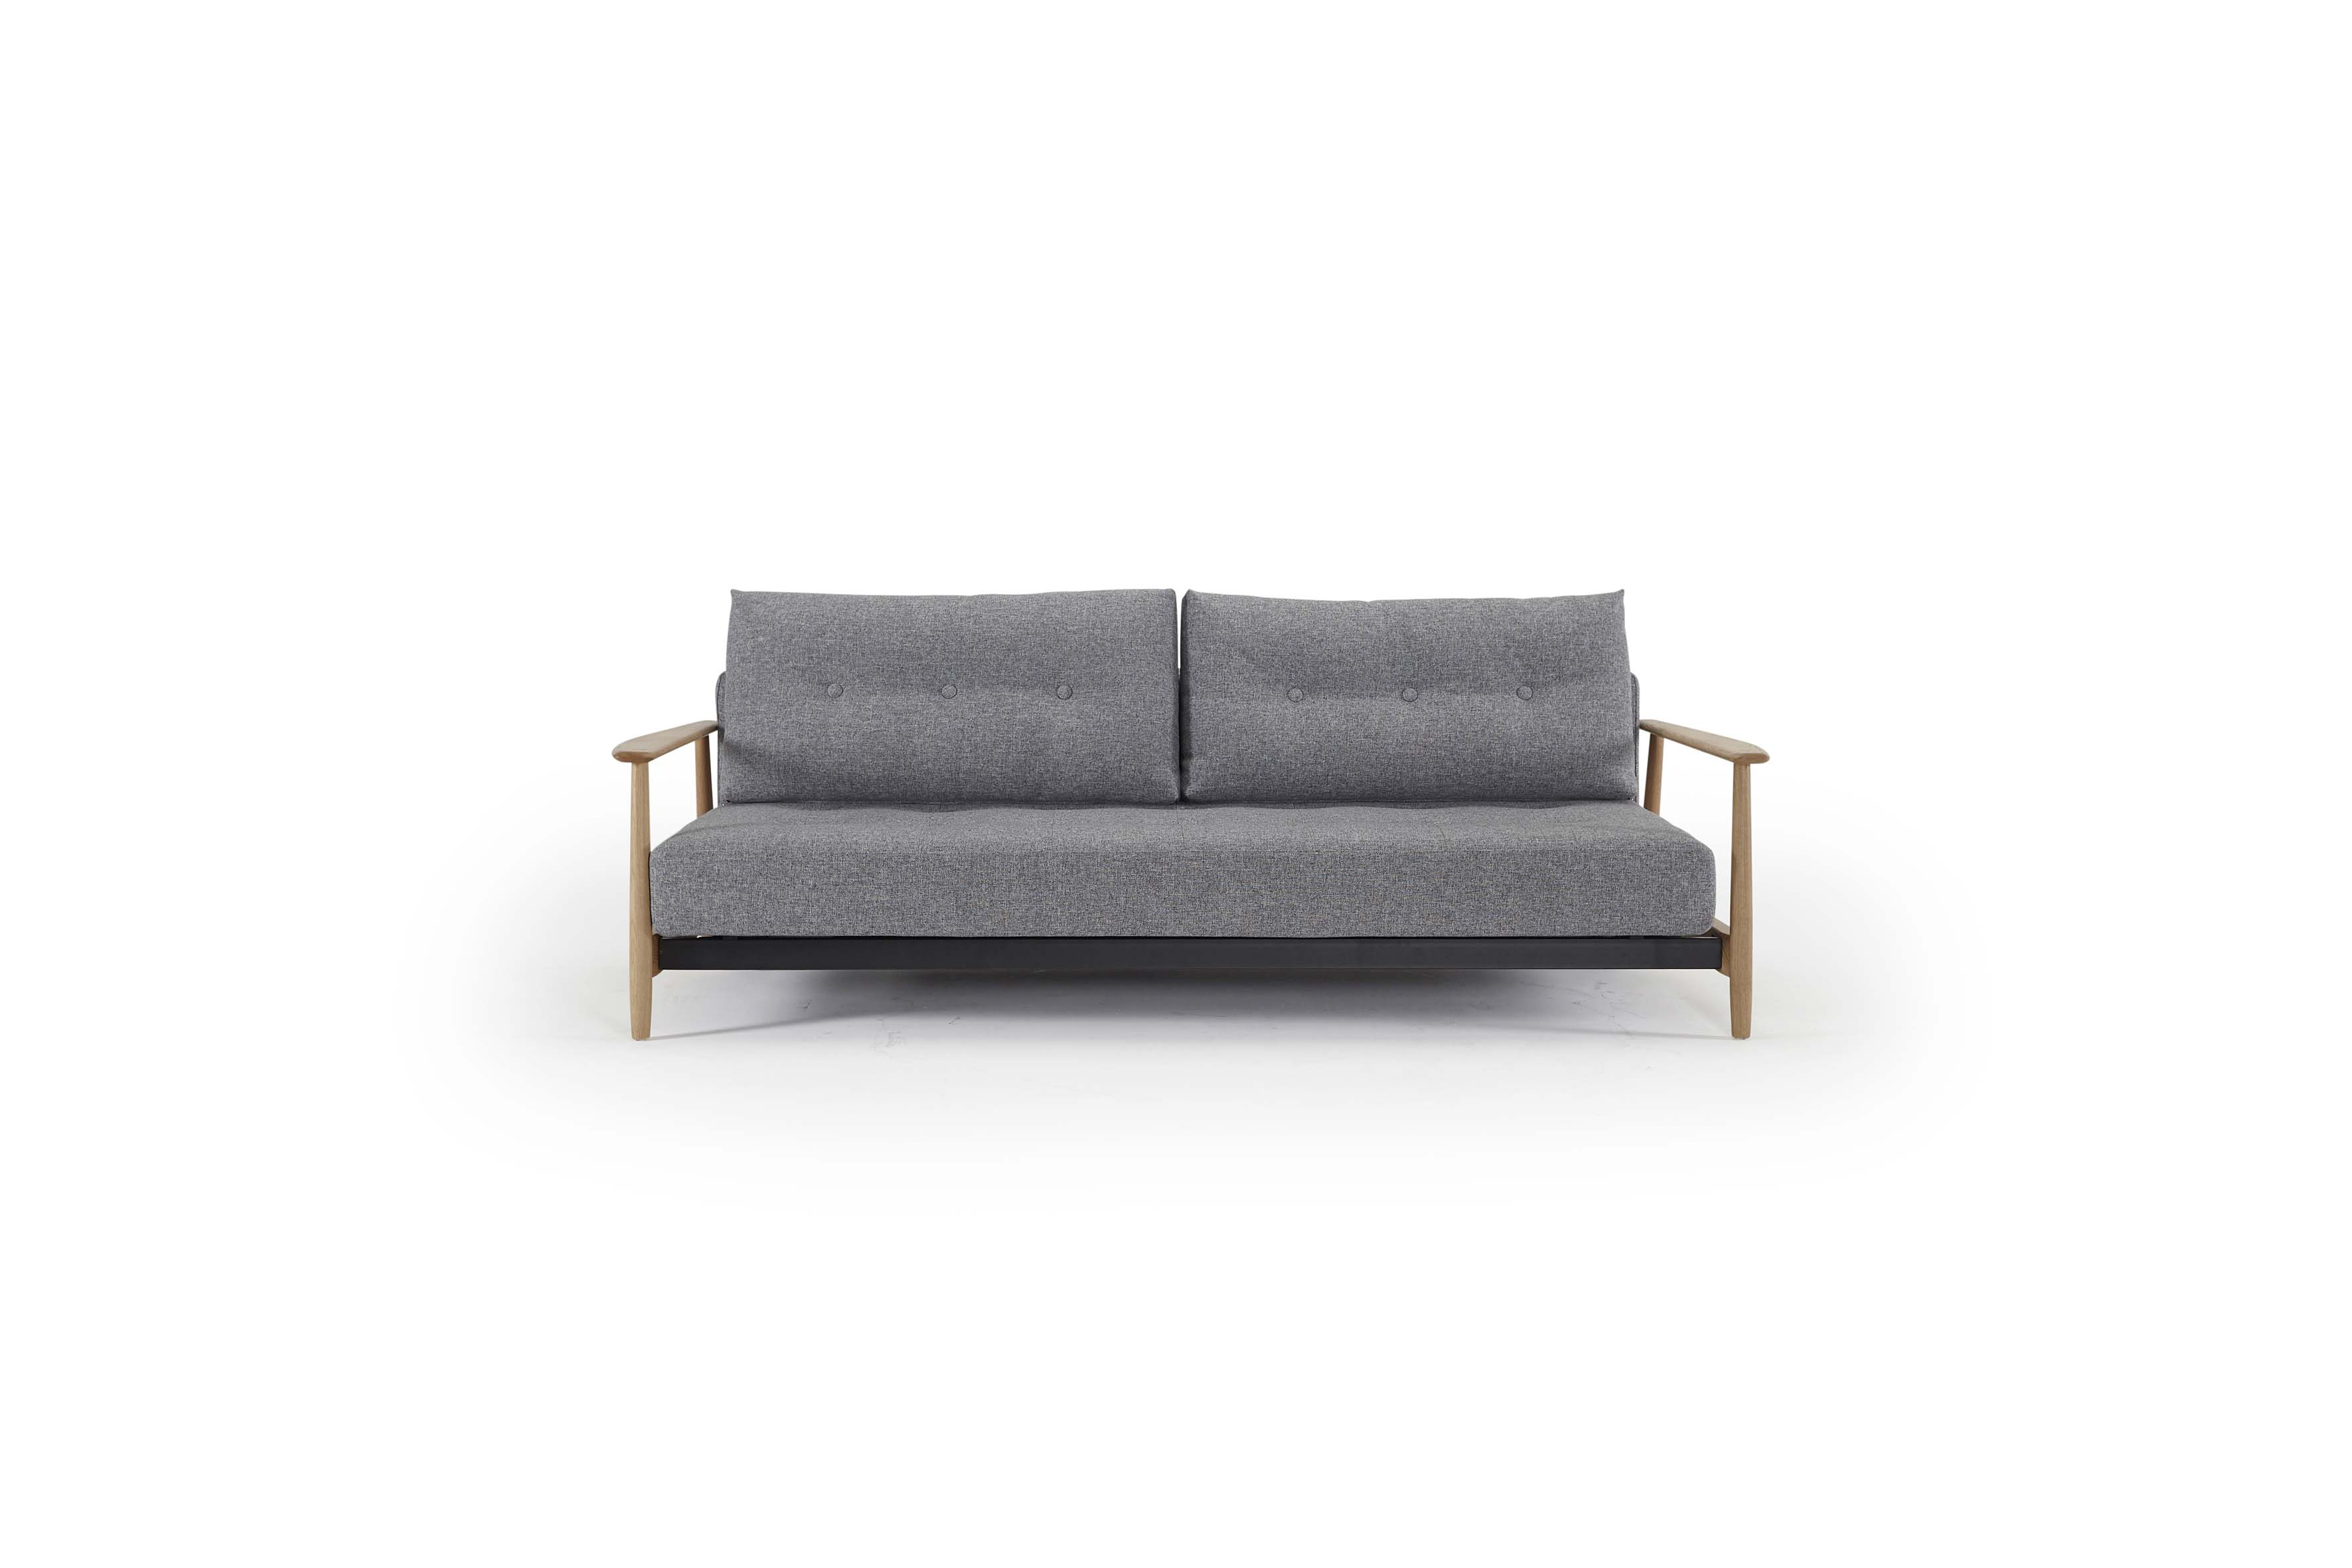 Large Sofa Beds Everyday Use Innovation Living Philippines Danish Design Sofa Beds For Small